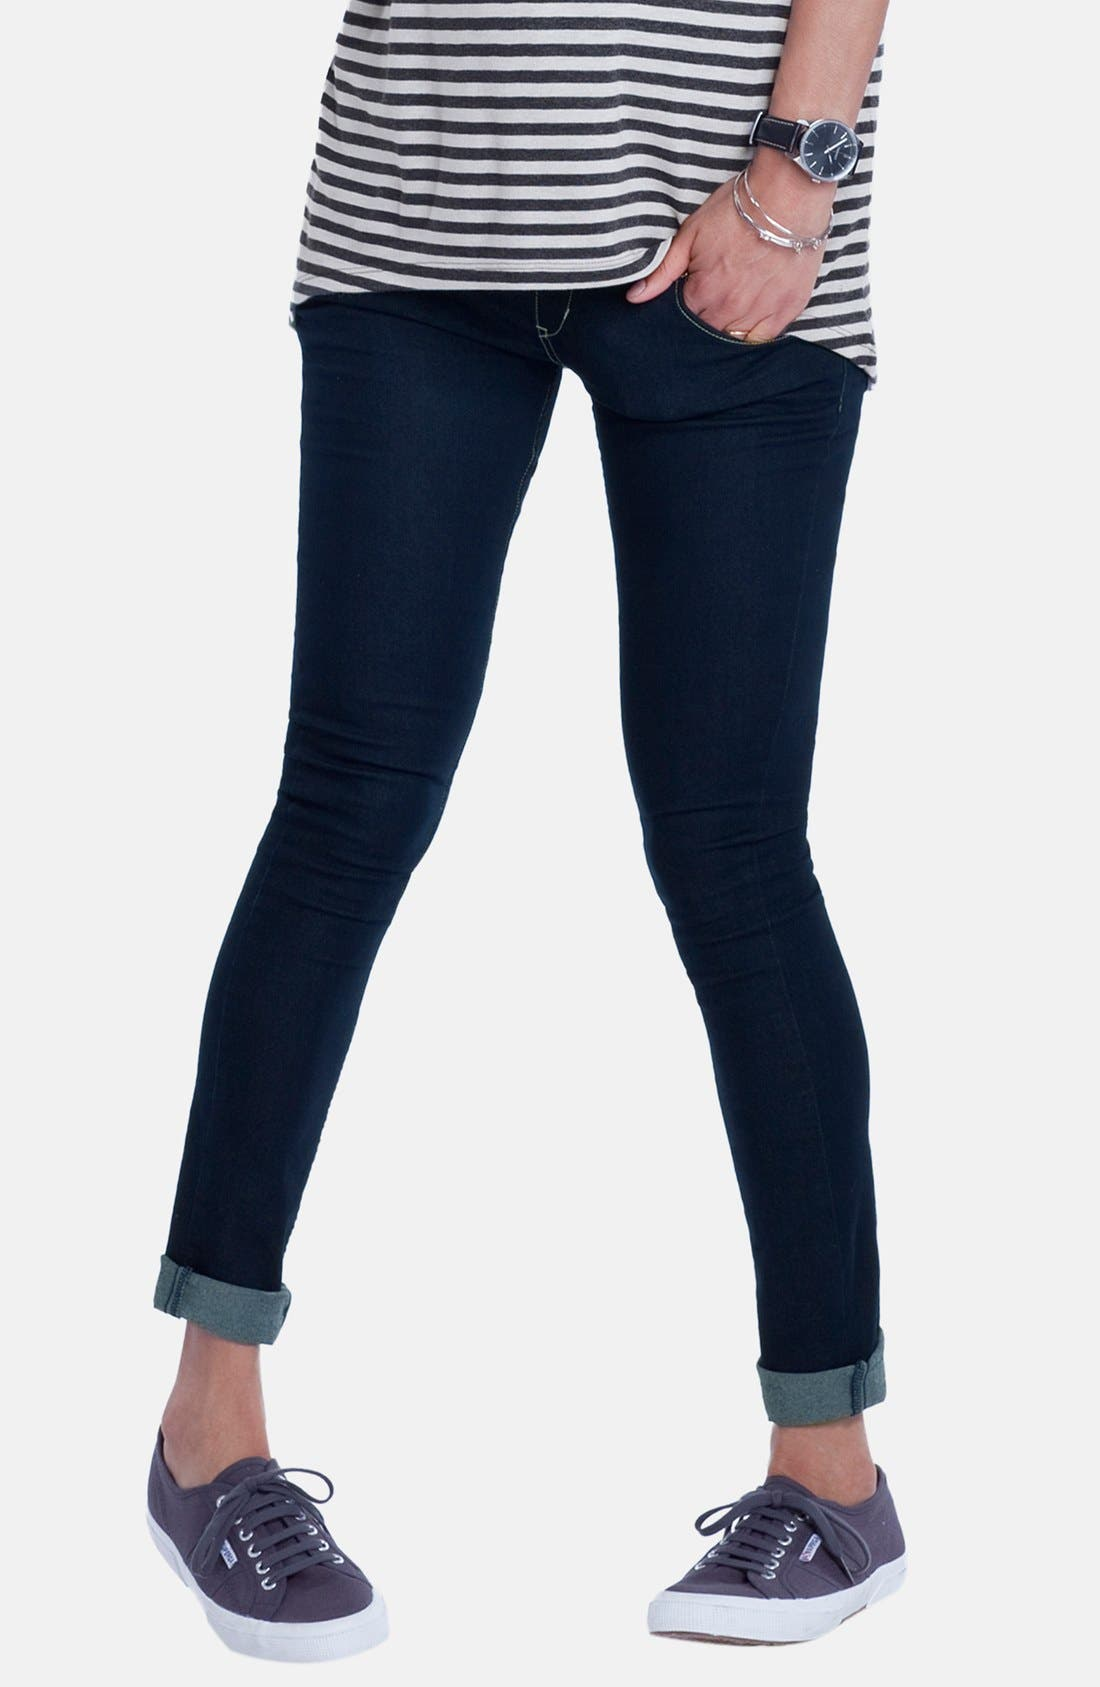 'Zadie' Stretch Maternity Skinny Jeans,                             Main thumbnail 1, color,                             INDIGO